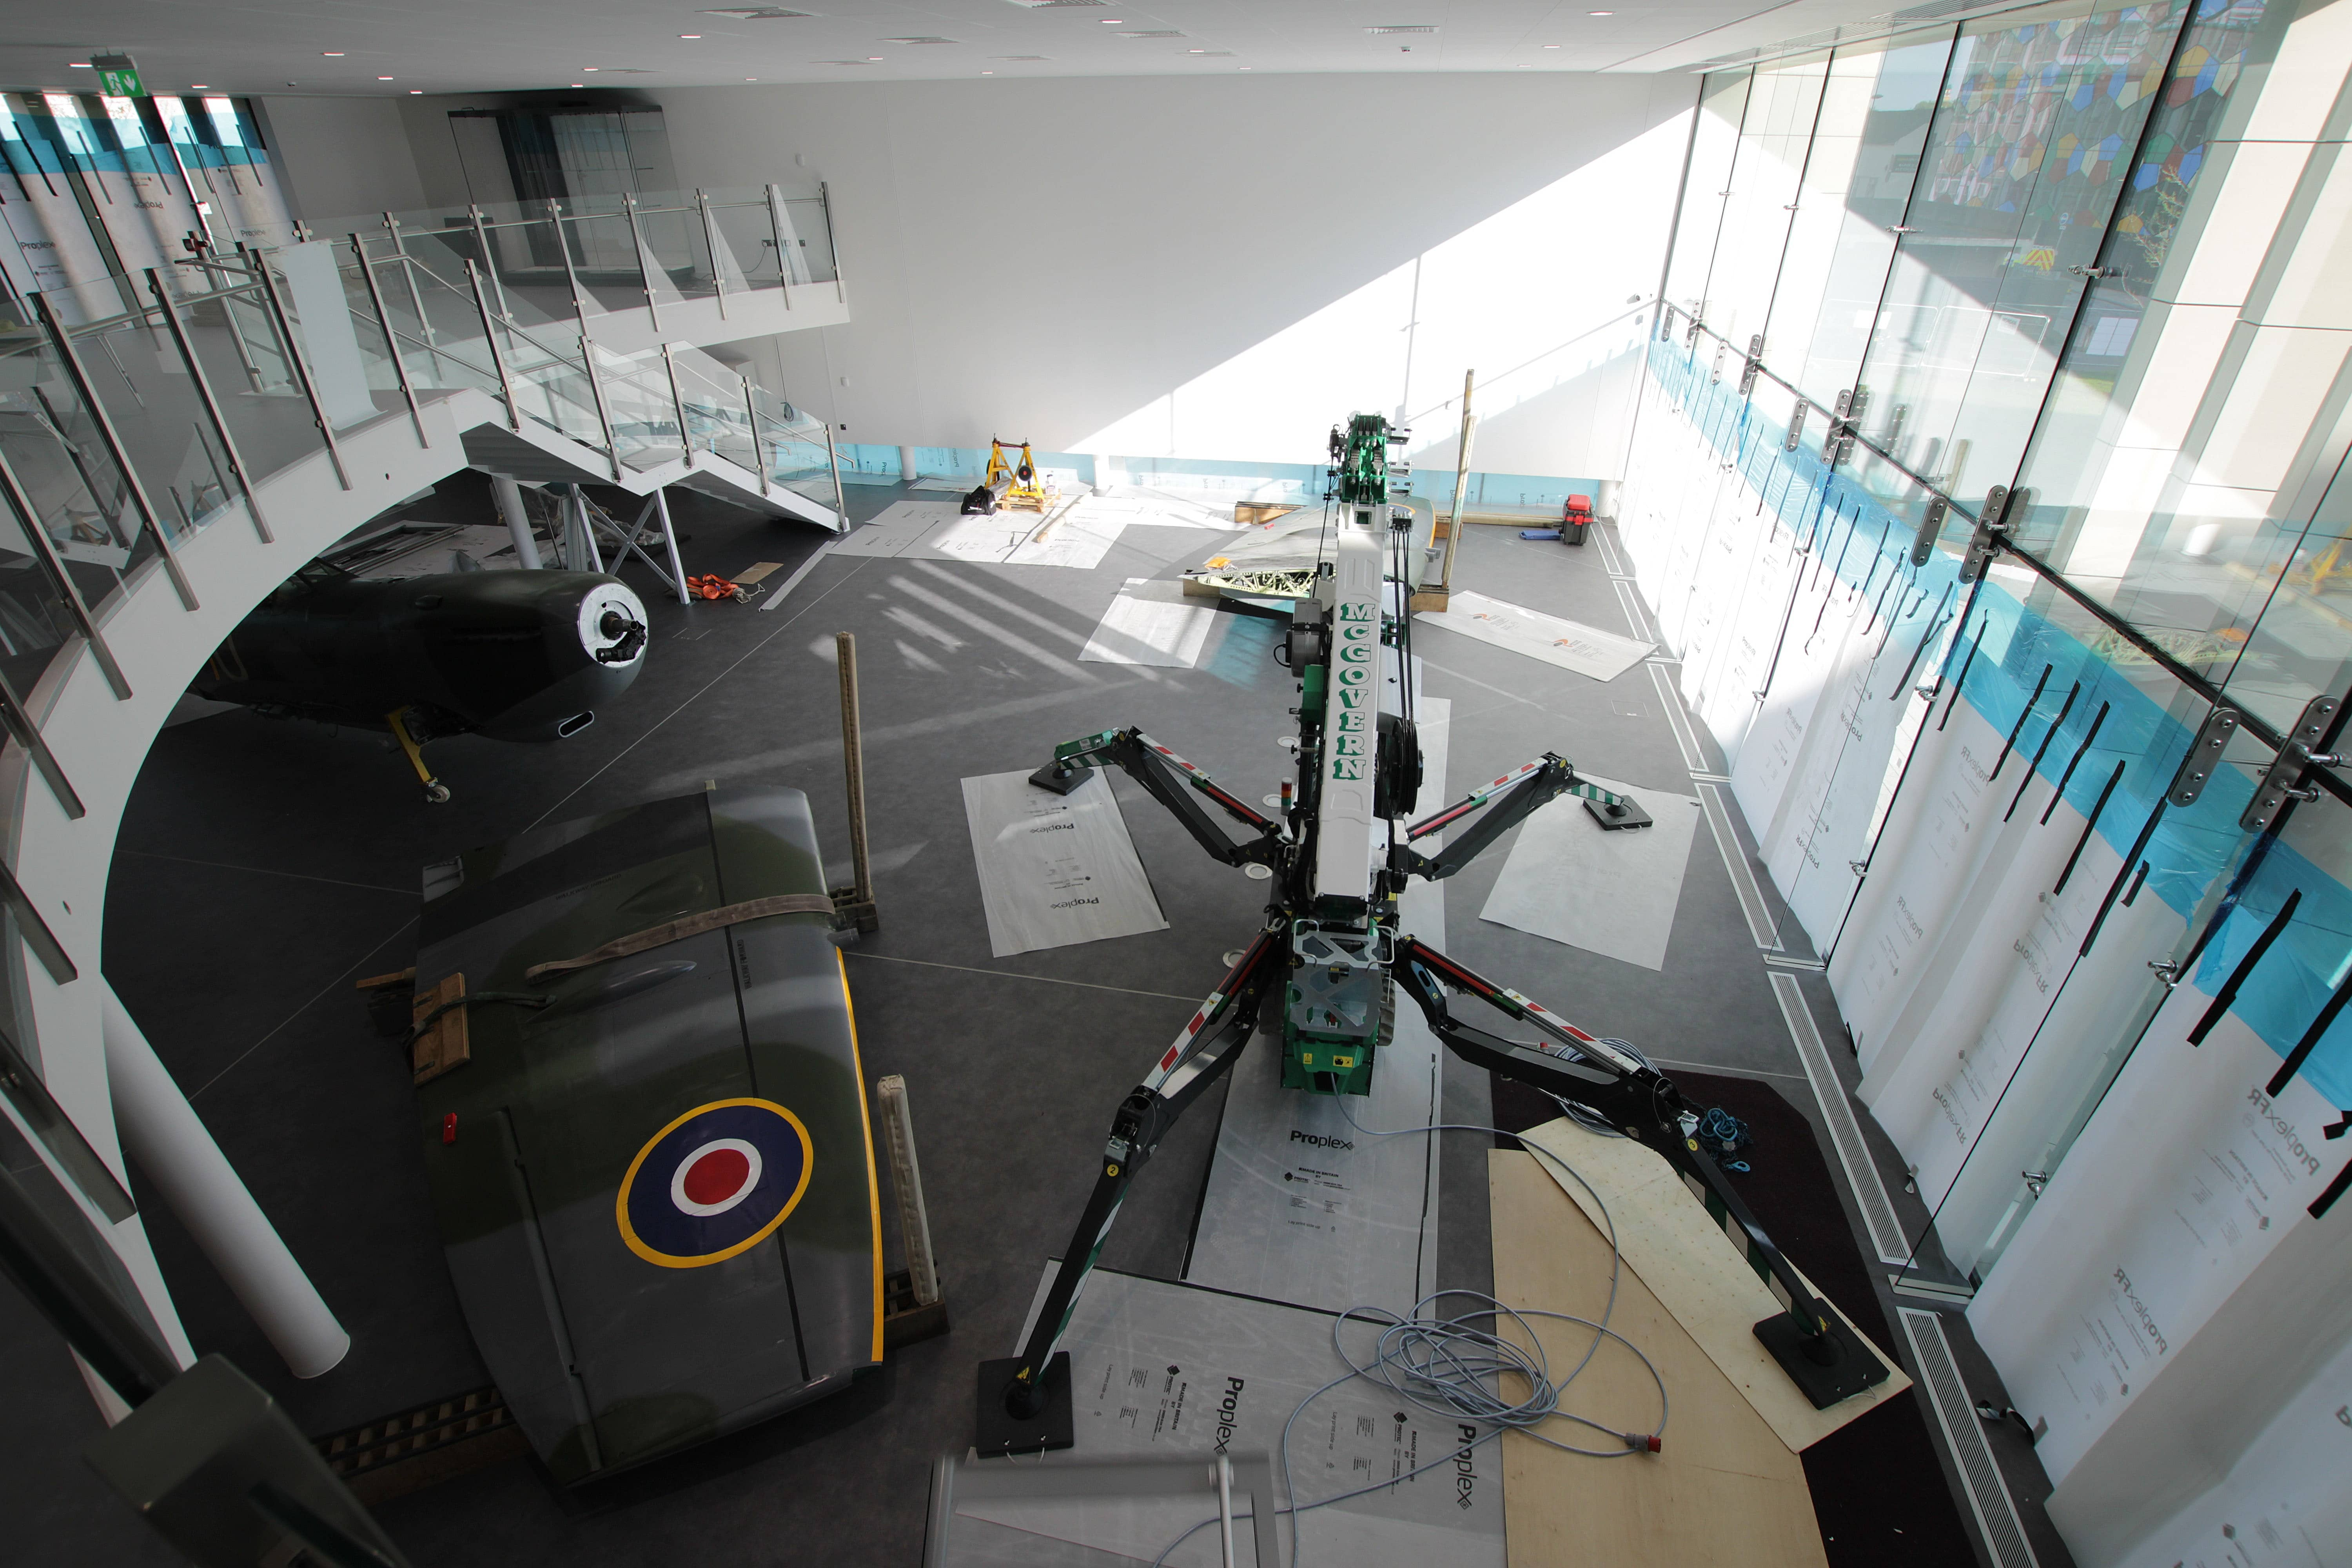 Spitfire RW388 reconstruction revealed in time-lapse video